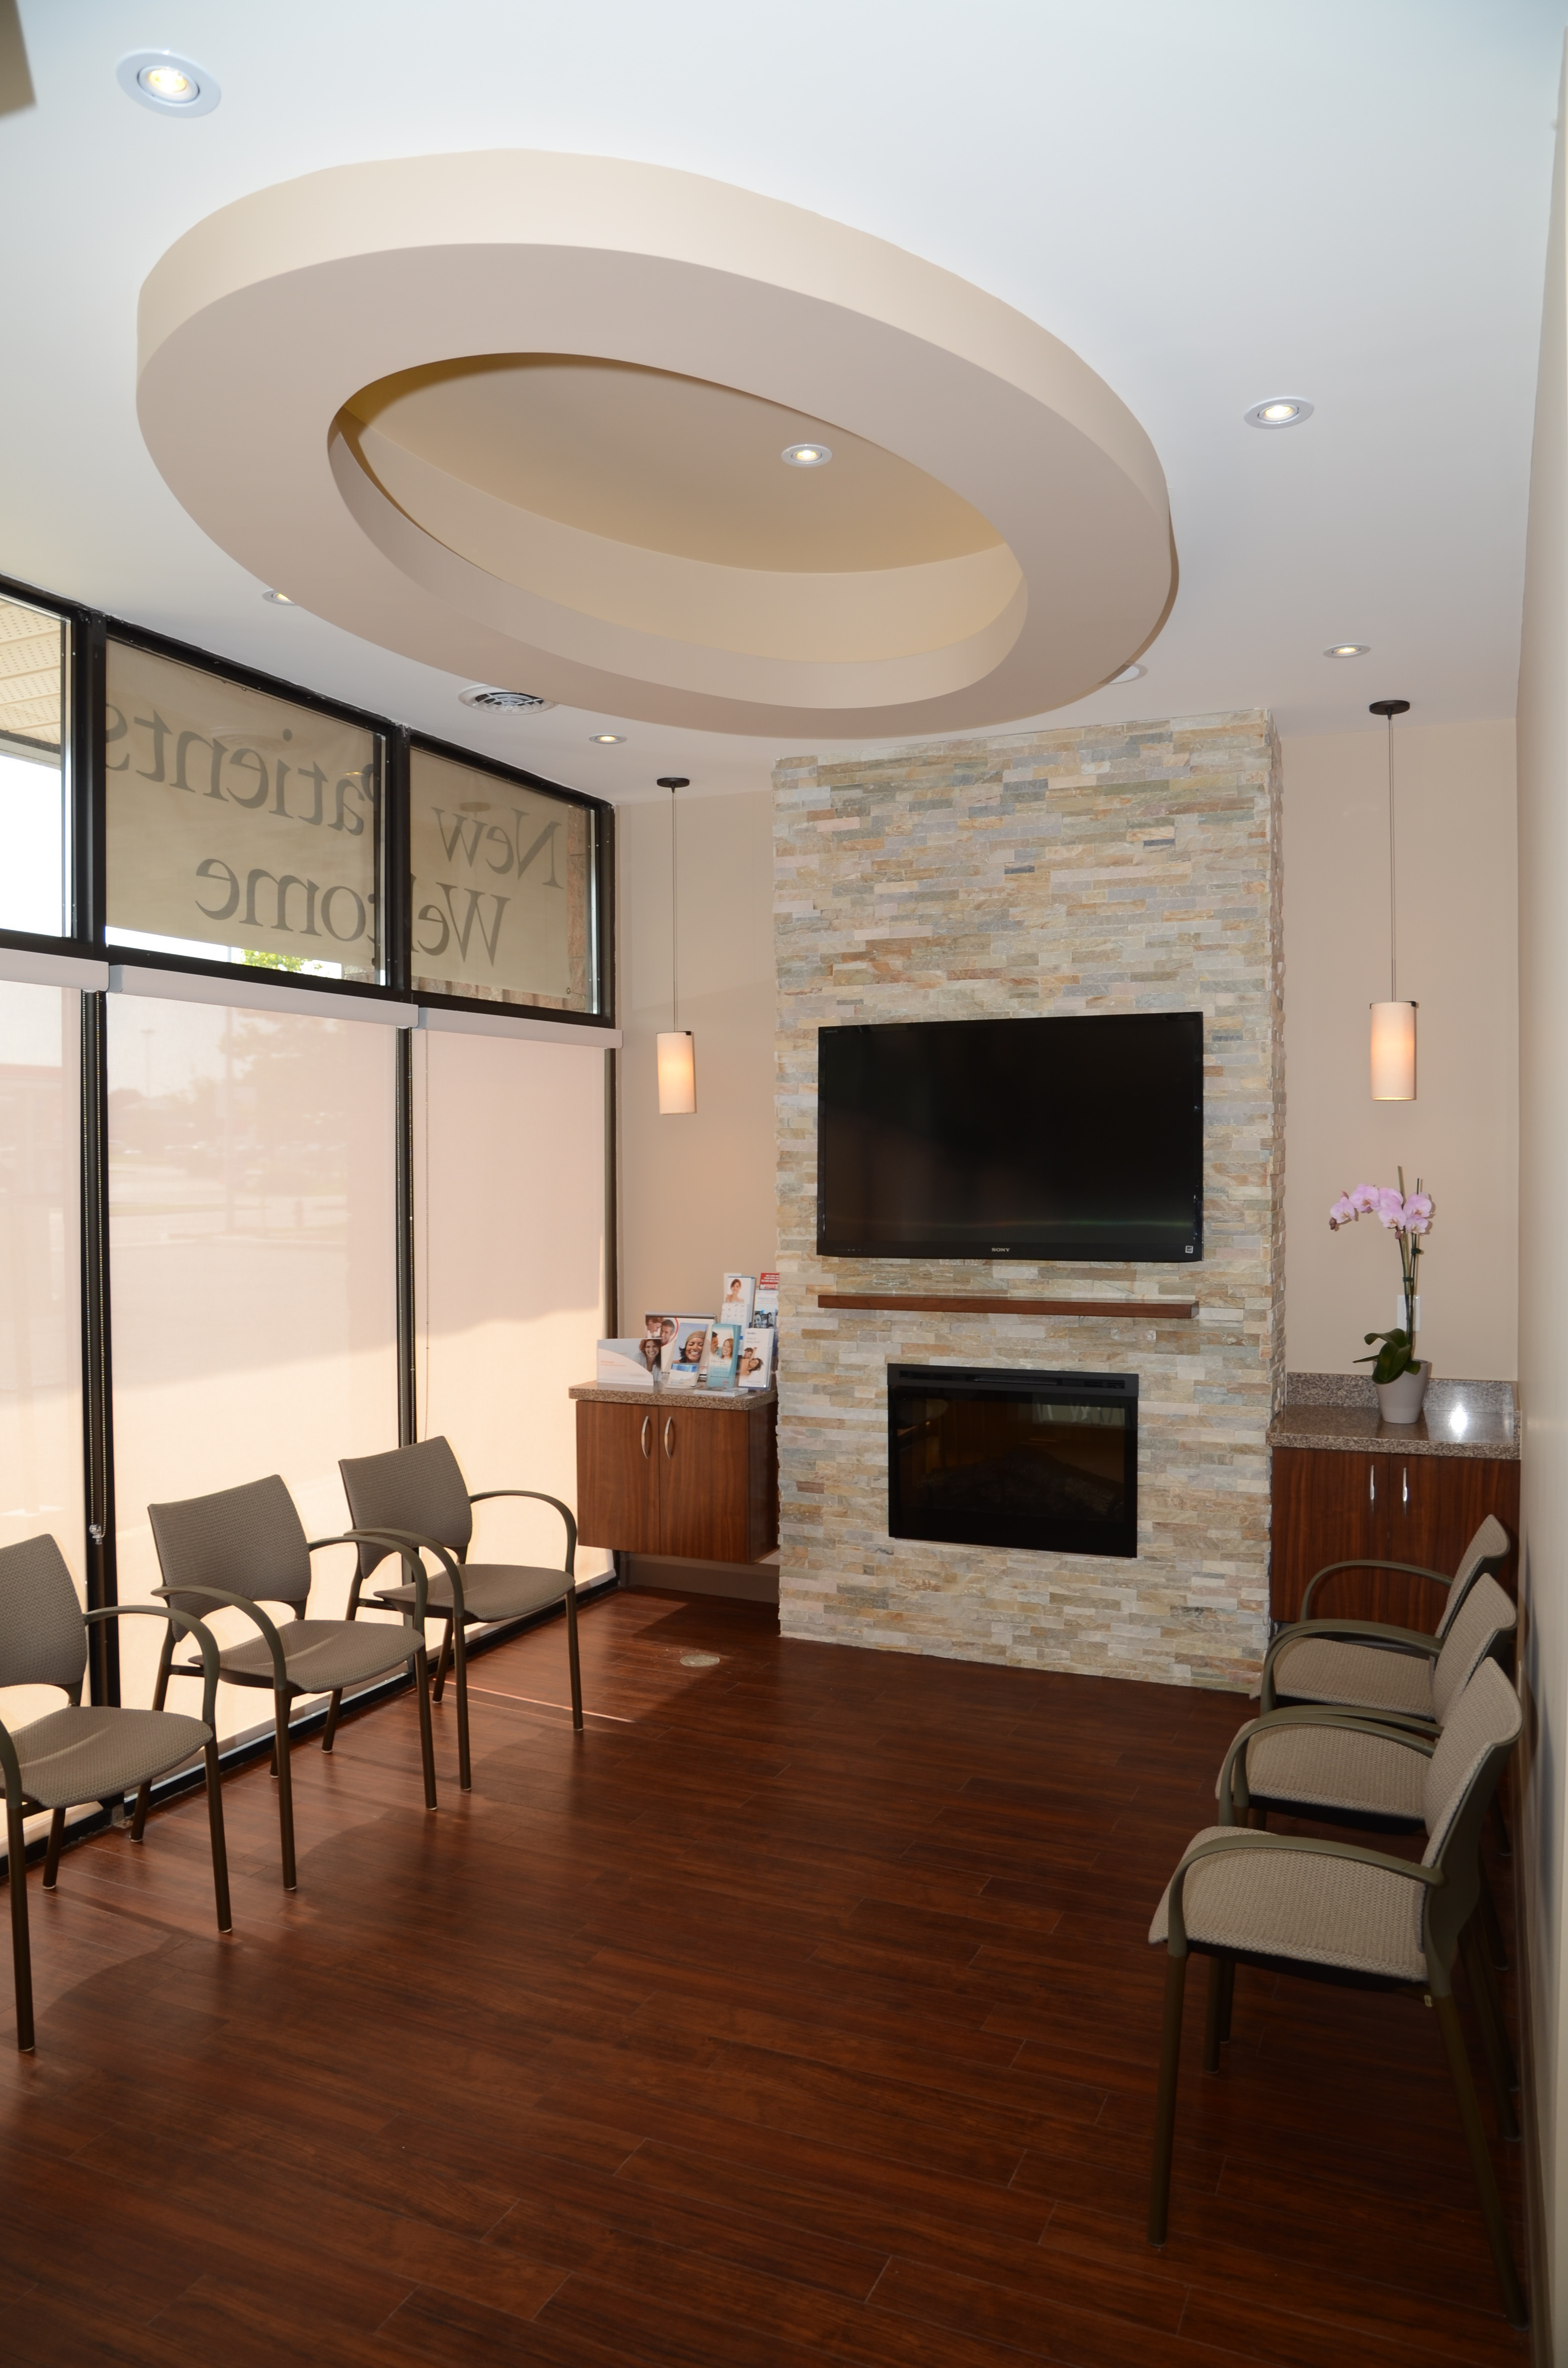 Our warm and inviting office will provide a relaxing experience for your entire family.